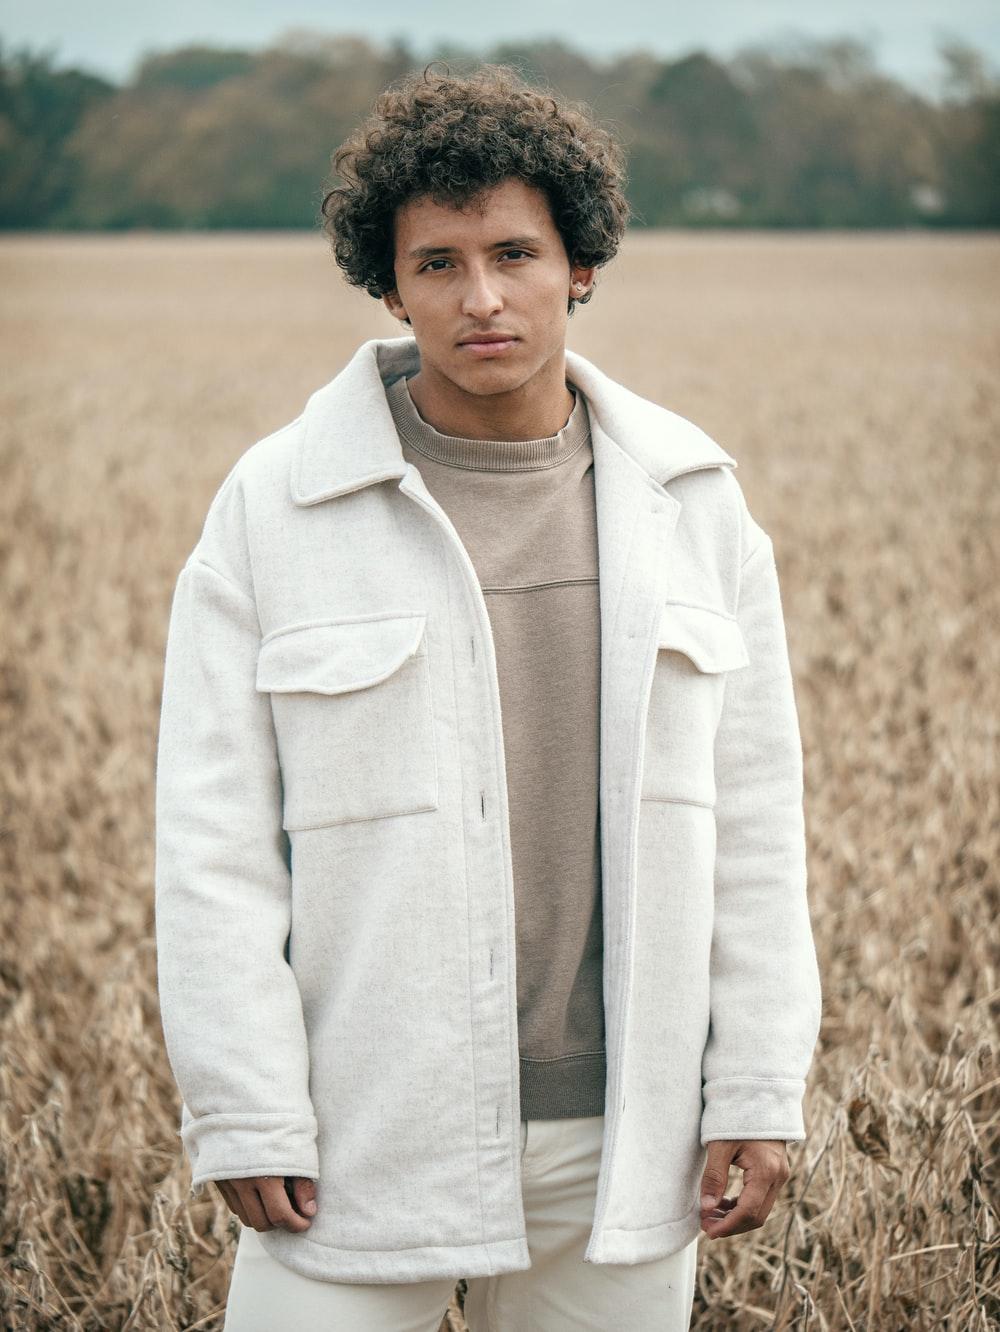 man in white coat standing on brown grass field during daytime